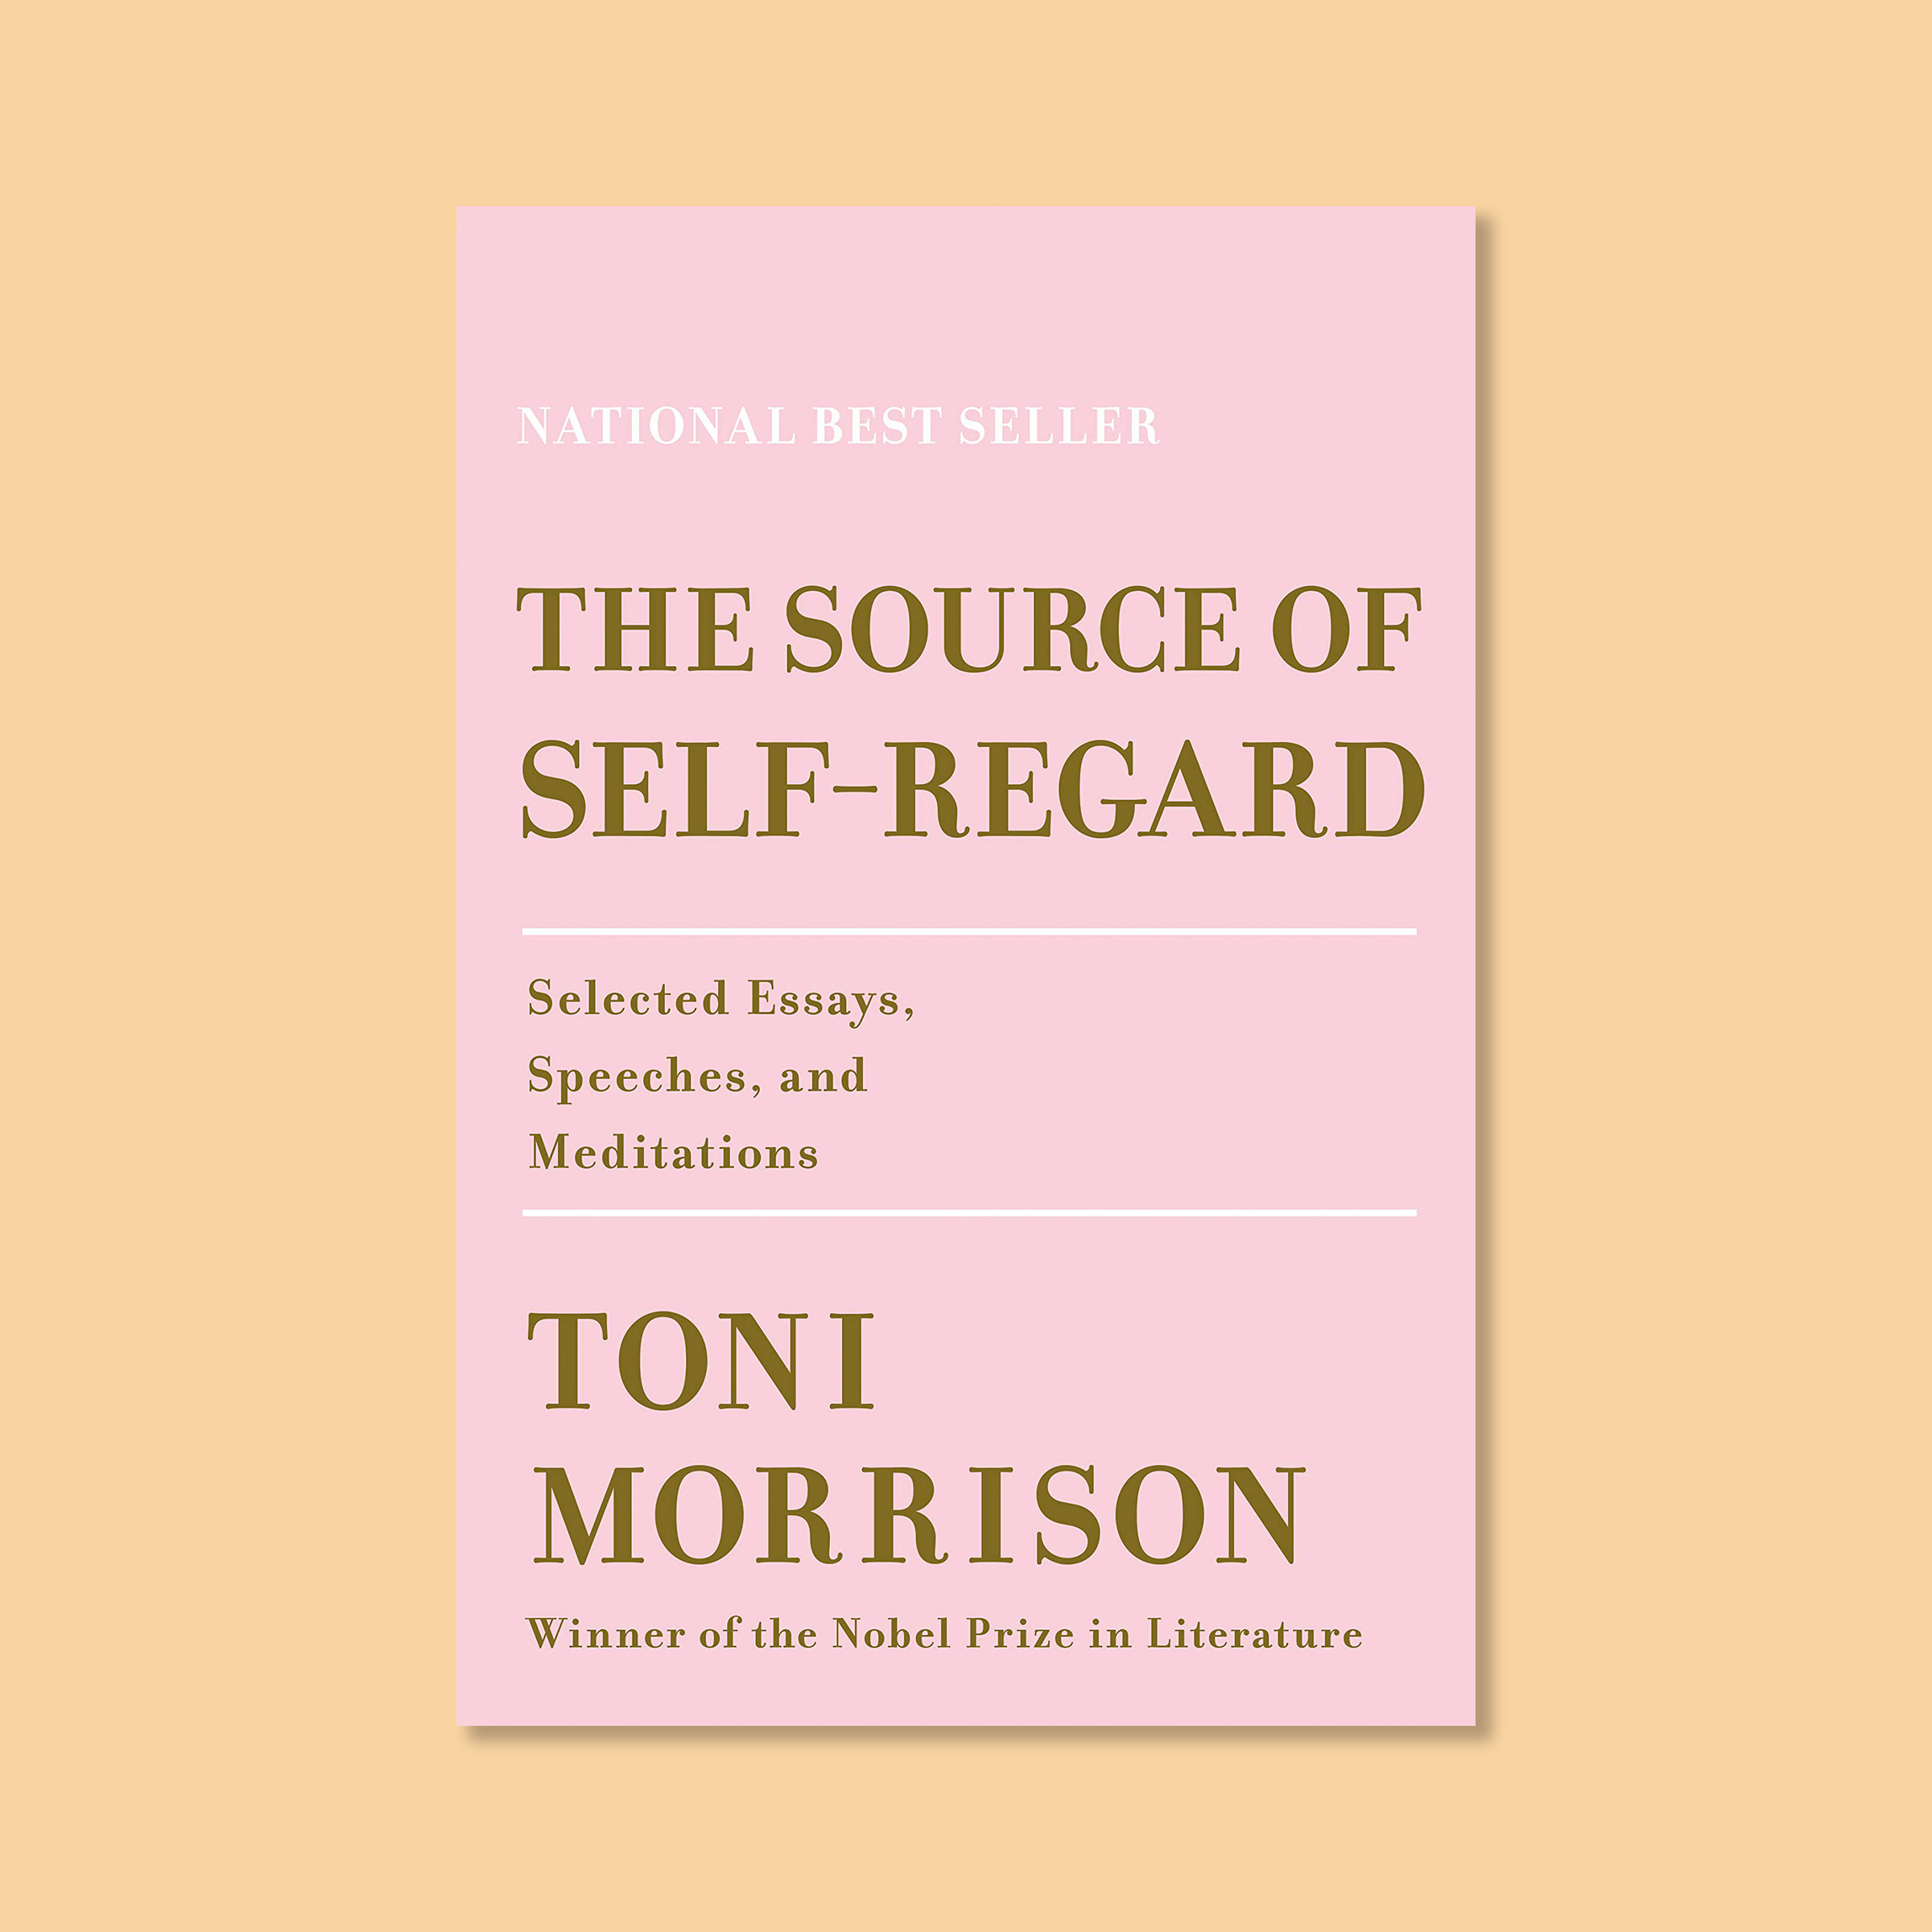 Toni Morrison Books: The Essential Reads to Start With | Time